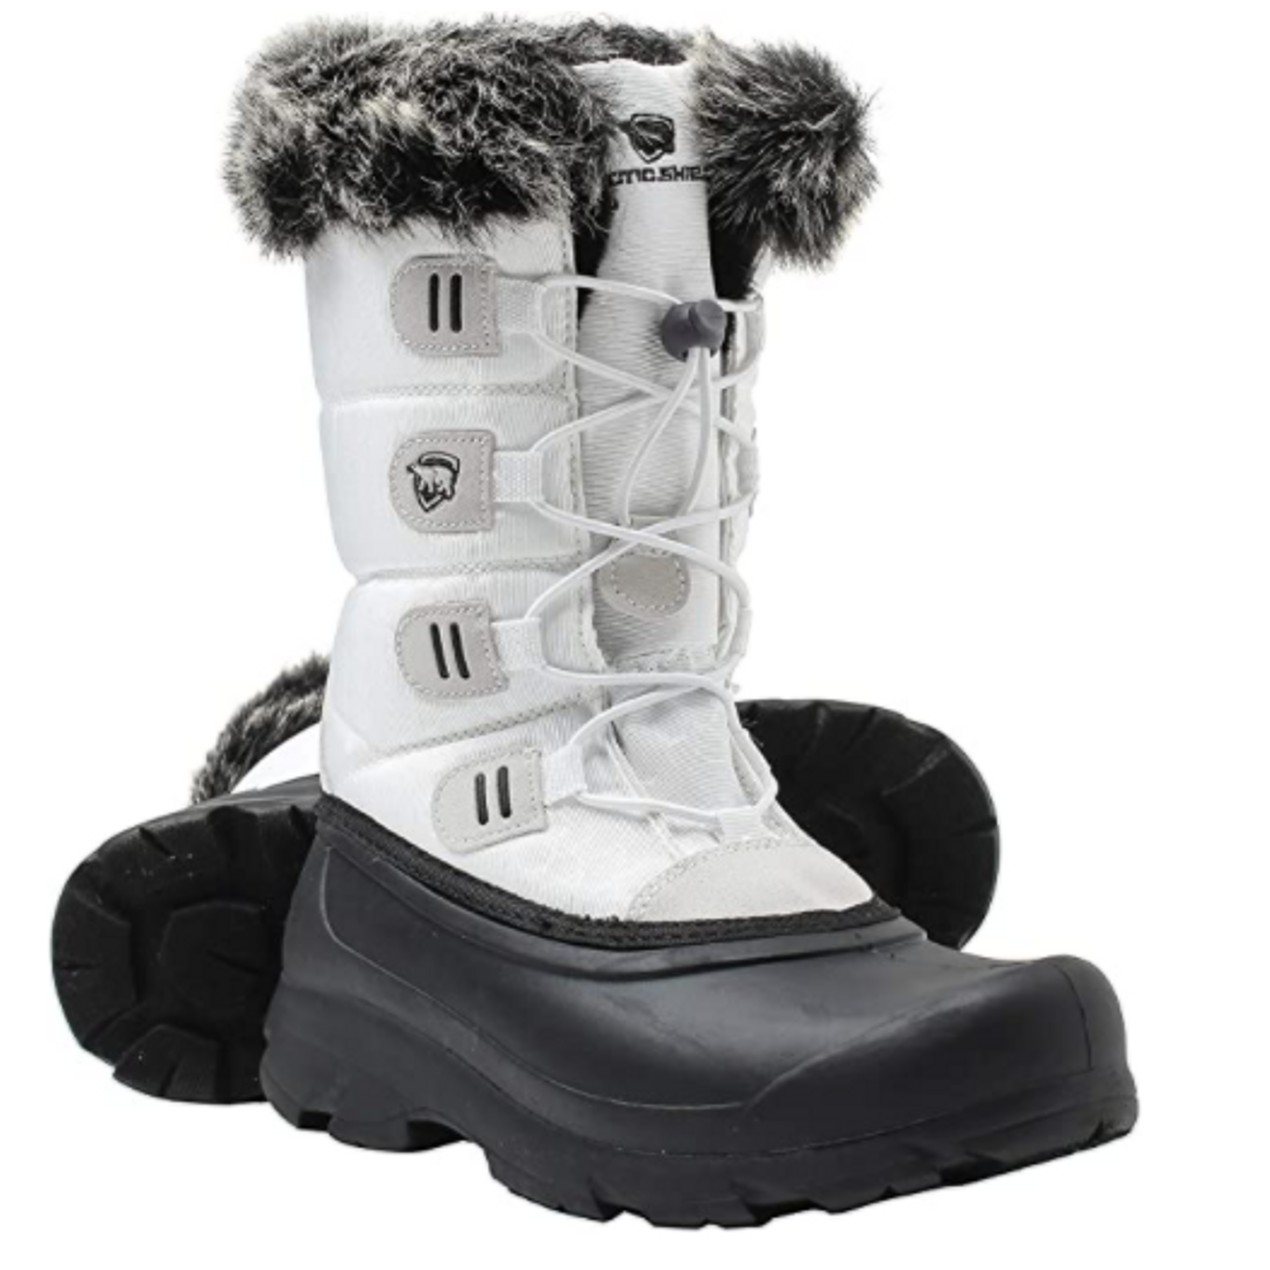 Artic Shield Polar Waterproof Insulated Durable Cold Rated Winter Snow Boot